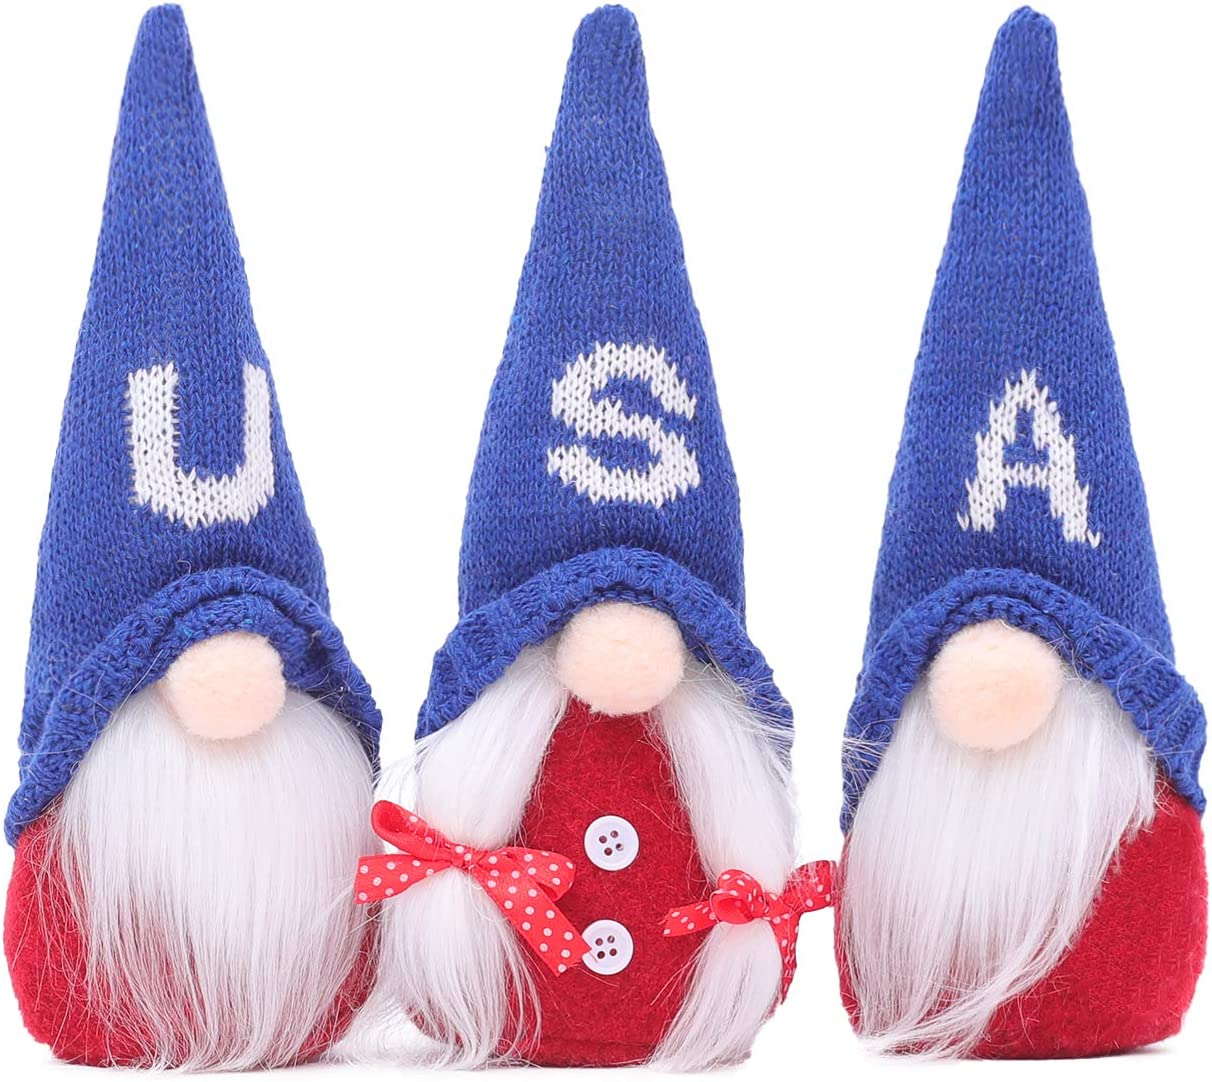 4th of July Patriotic Gnome Plush Decoration Uncle Sam Tomte for American Independence Day Gifts Red,Blue USA Hat Handmade Scandinavian Folklore Elf Dwarf Home Living Room Ornaments Kitchen Decor